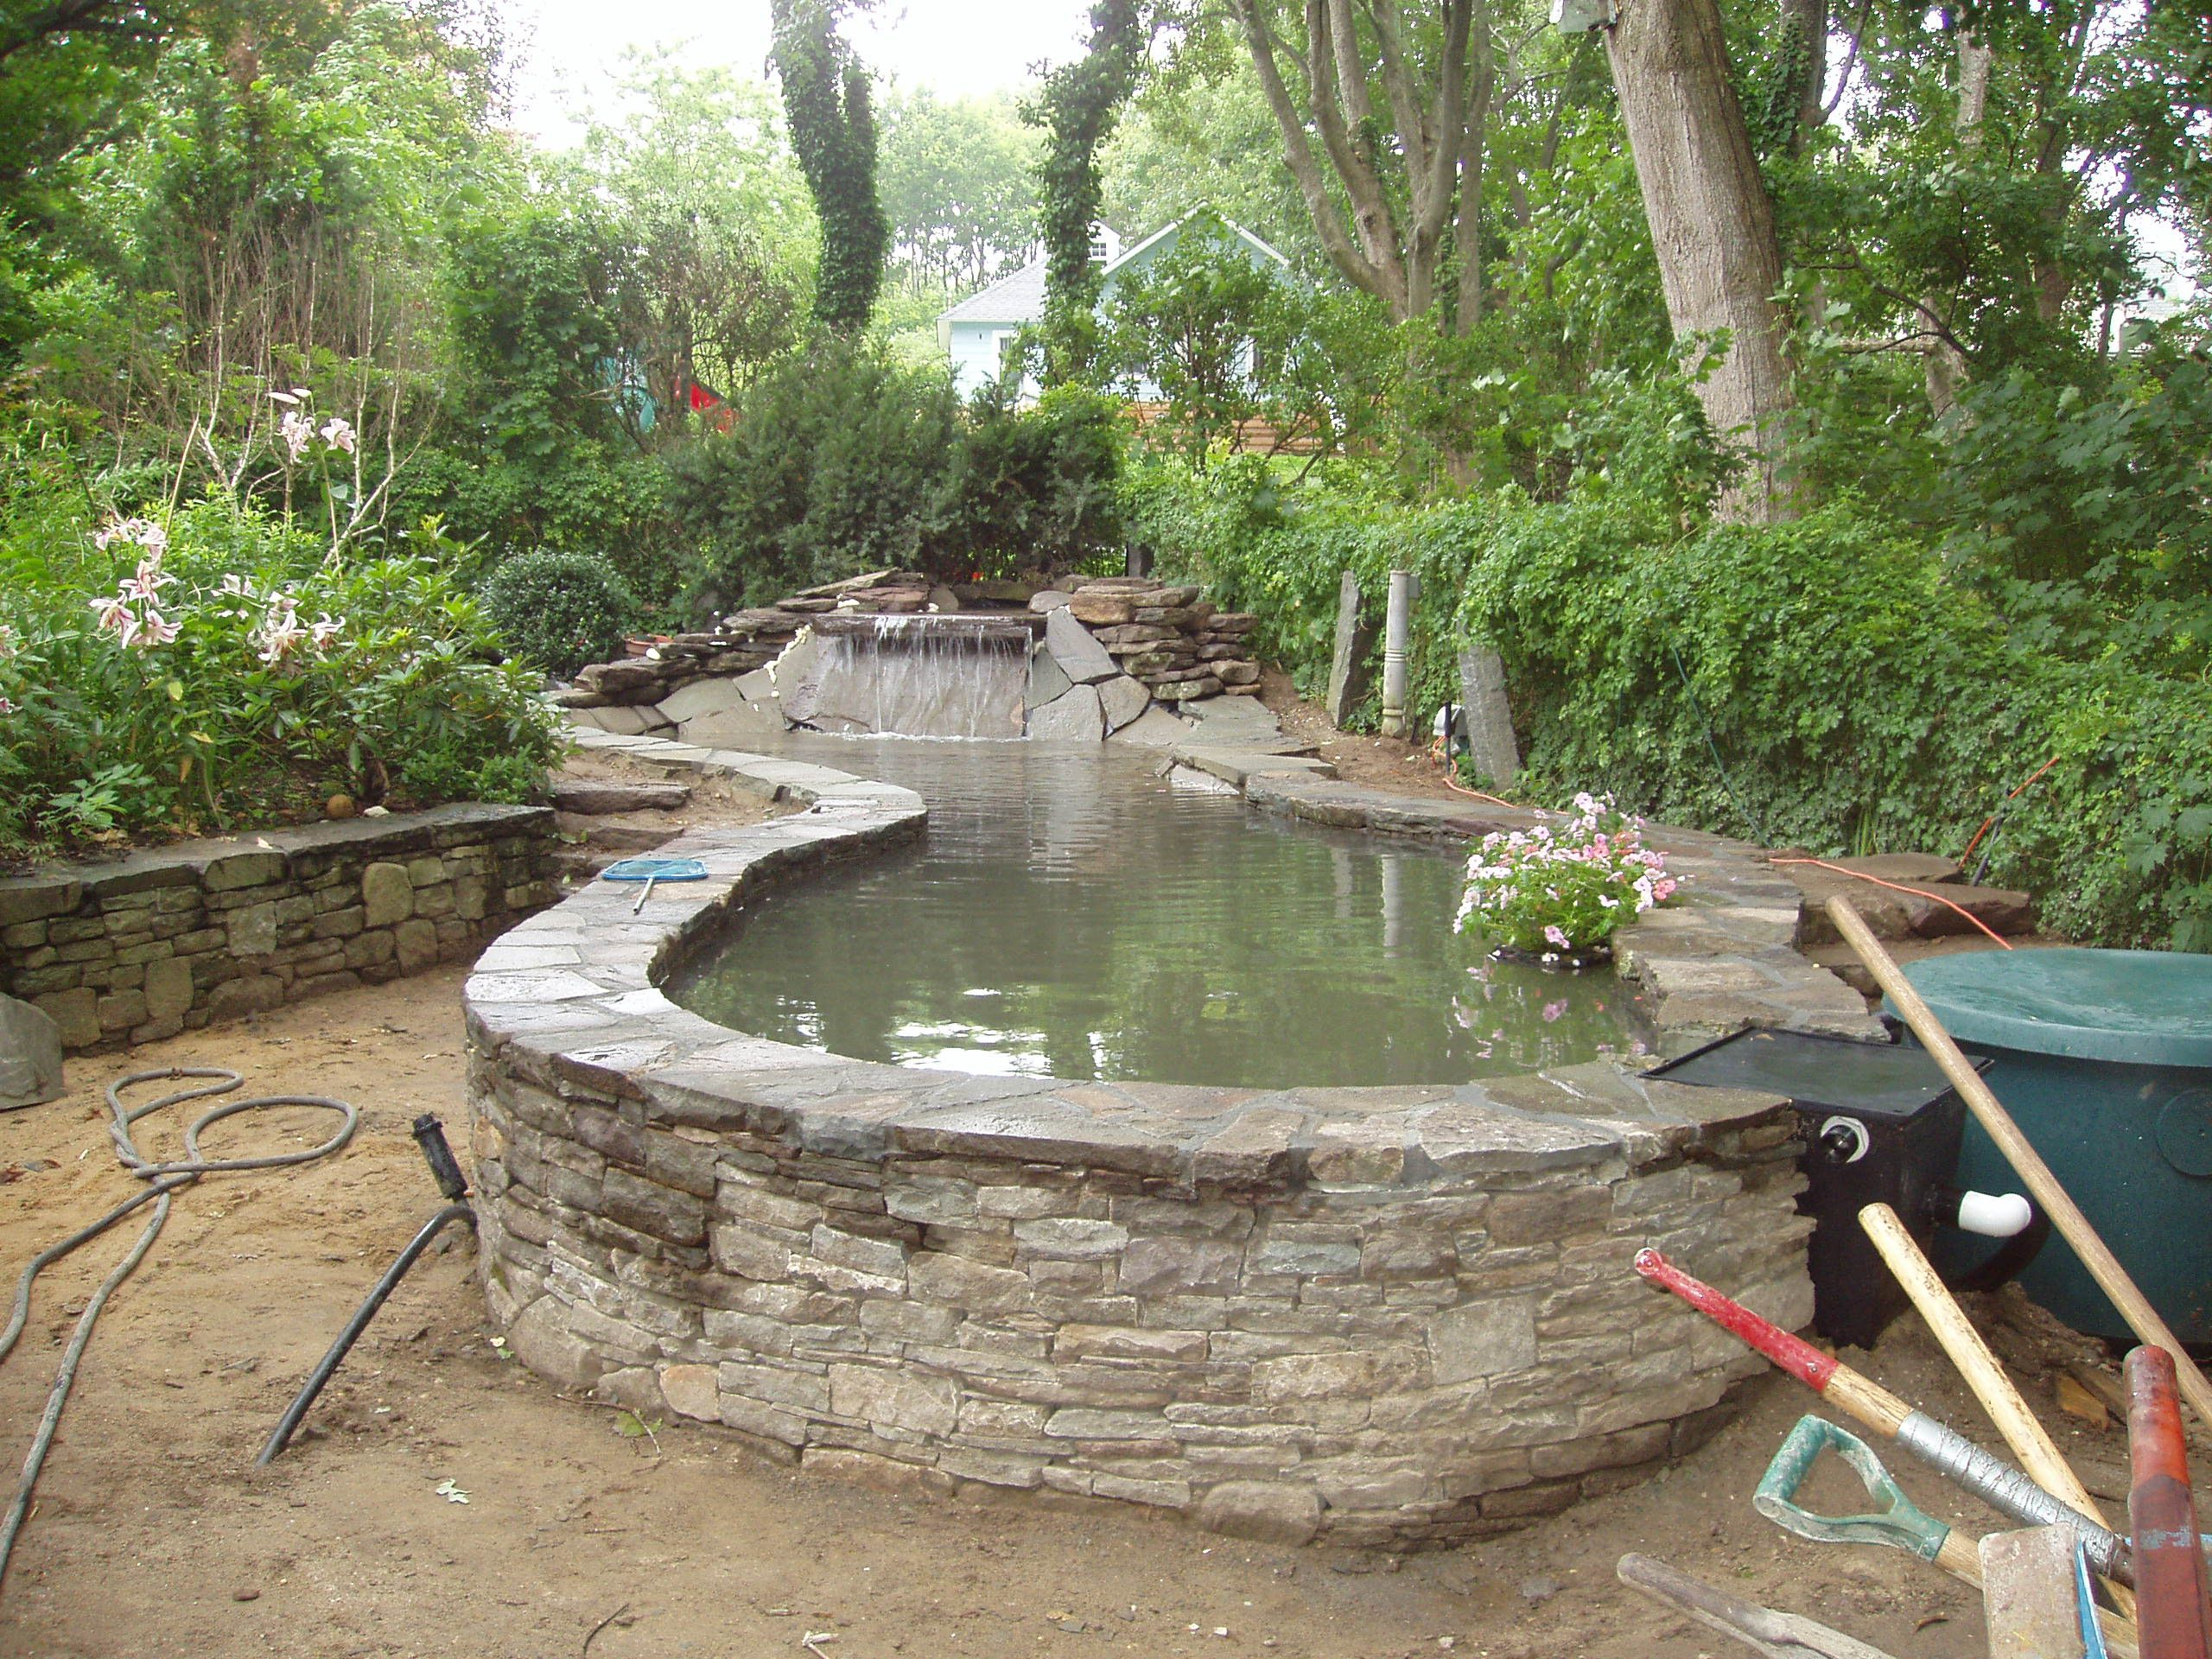 Fish pond pictures 95740 wallpapers things to make Above ground koi pond design ideas